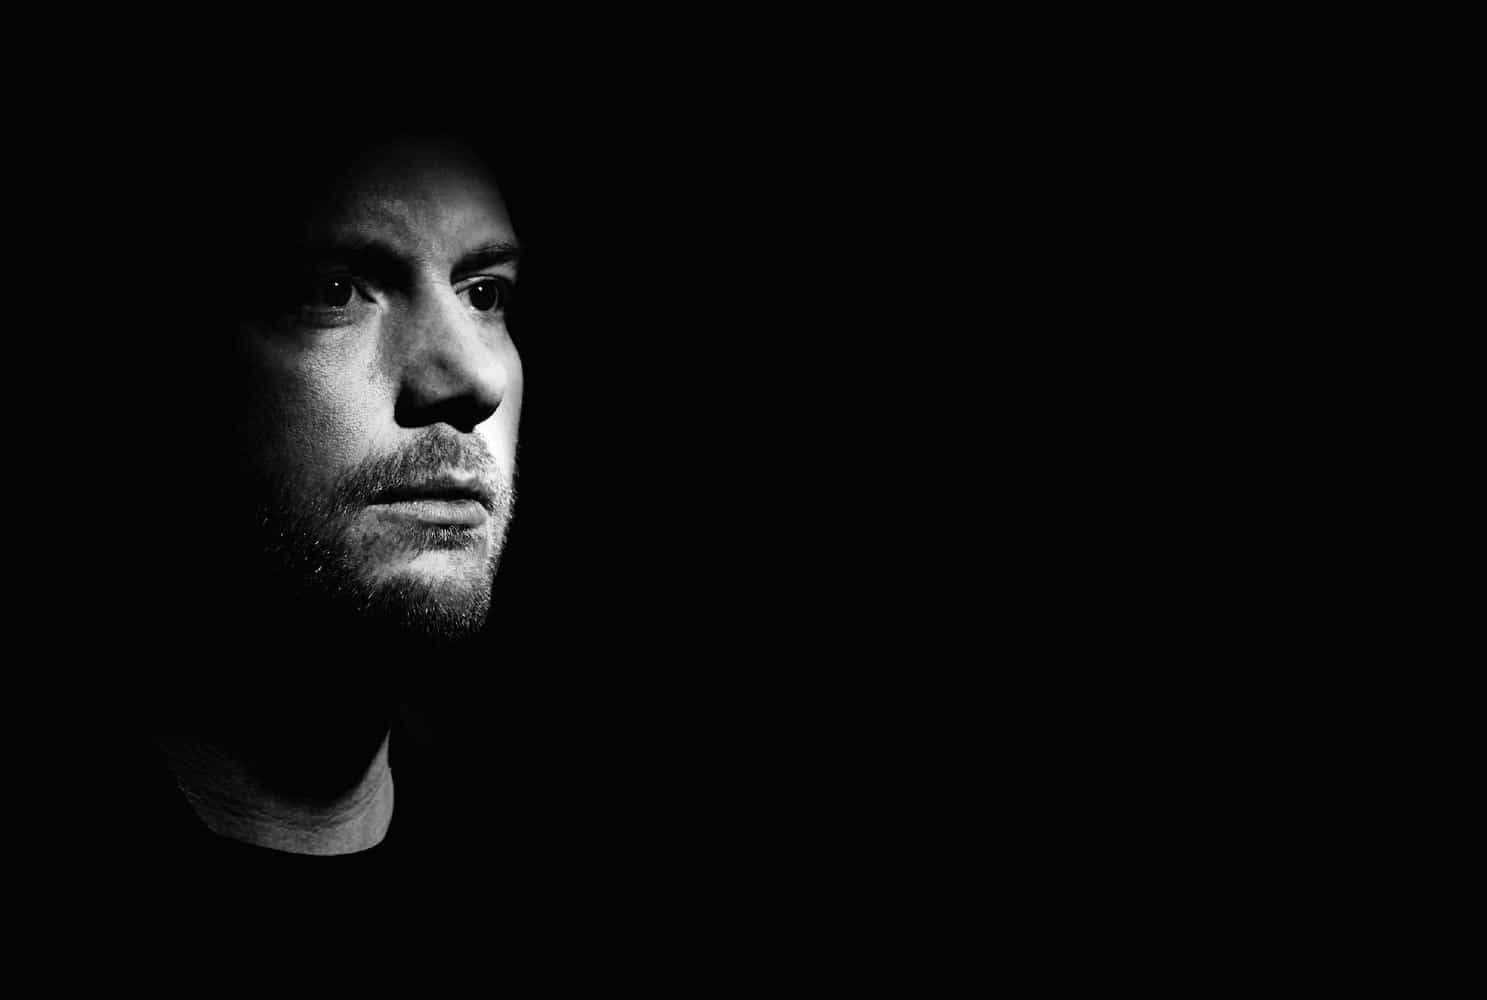 Eric Prydz Unveils Release of New 3-track EP Under his Cirez D Moniker